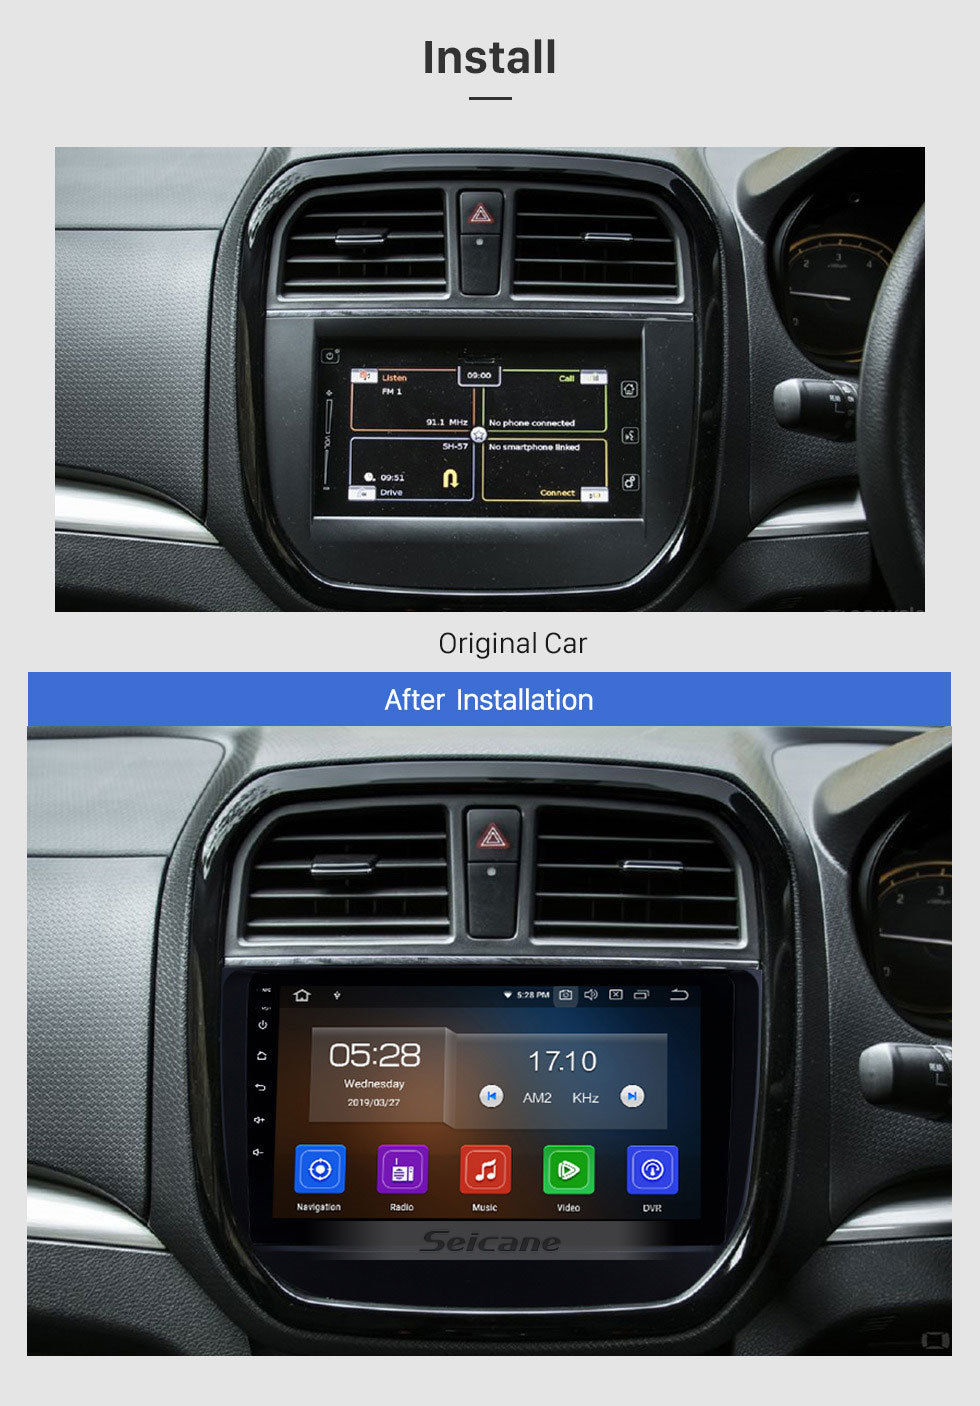 Seicane 2016 2017 2018 Suzuki BREZZA 9 inch IPS Touchscreen Android 9.0 Radio GPS Navigation Steering Wheel Control Auto Stereo with Bluetooth Wifi USB support Carplay DVD Player 4G DVR